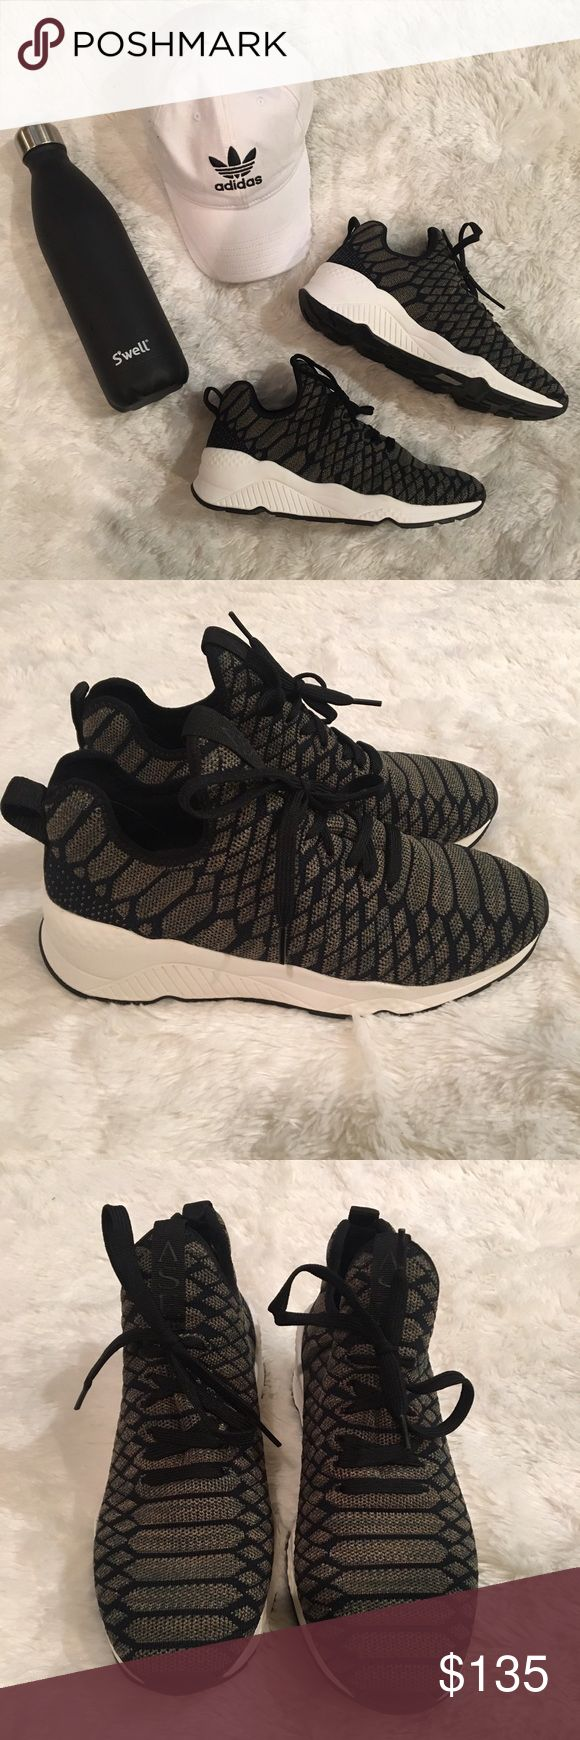 PRICE DROP✨ NEW Free People ASH sneakers Never worn, comes with box! Size 37M. Brand is ASH, but purchased from Free People Free People Shoes Sneakers